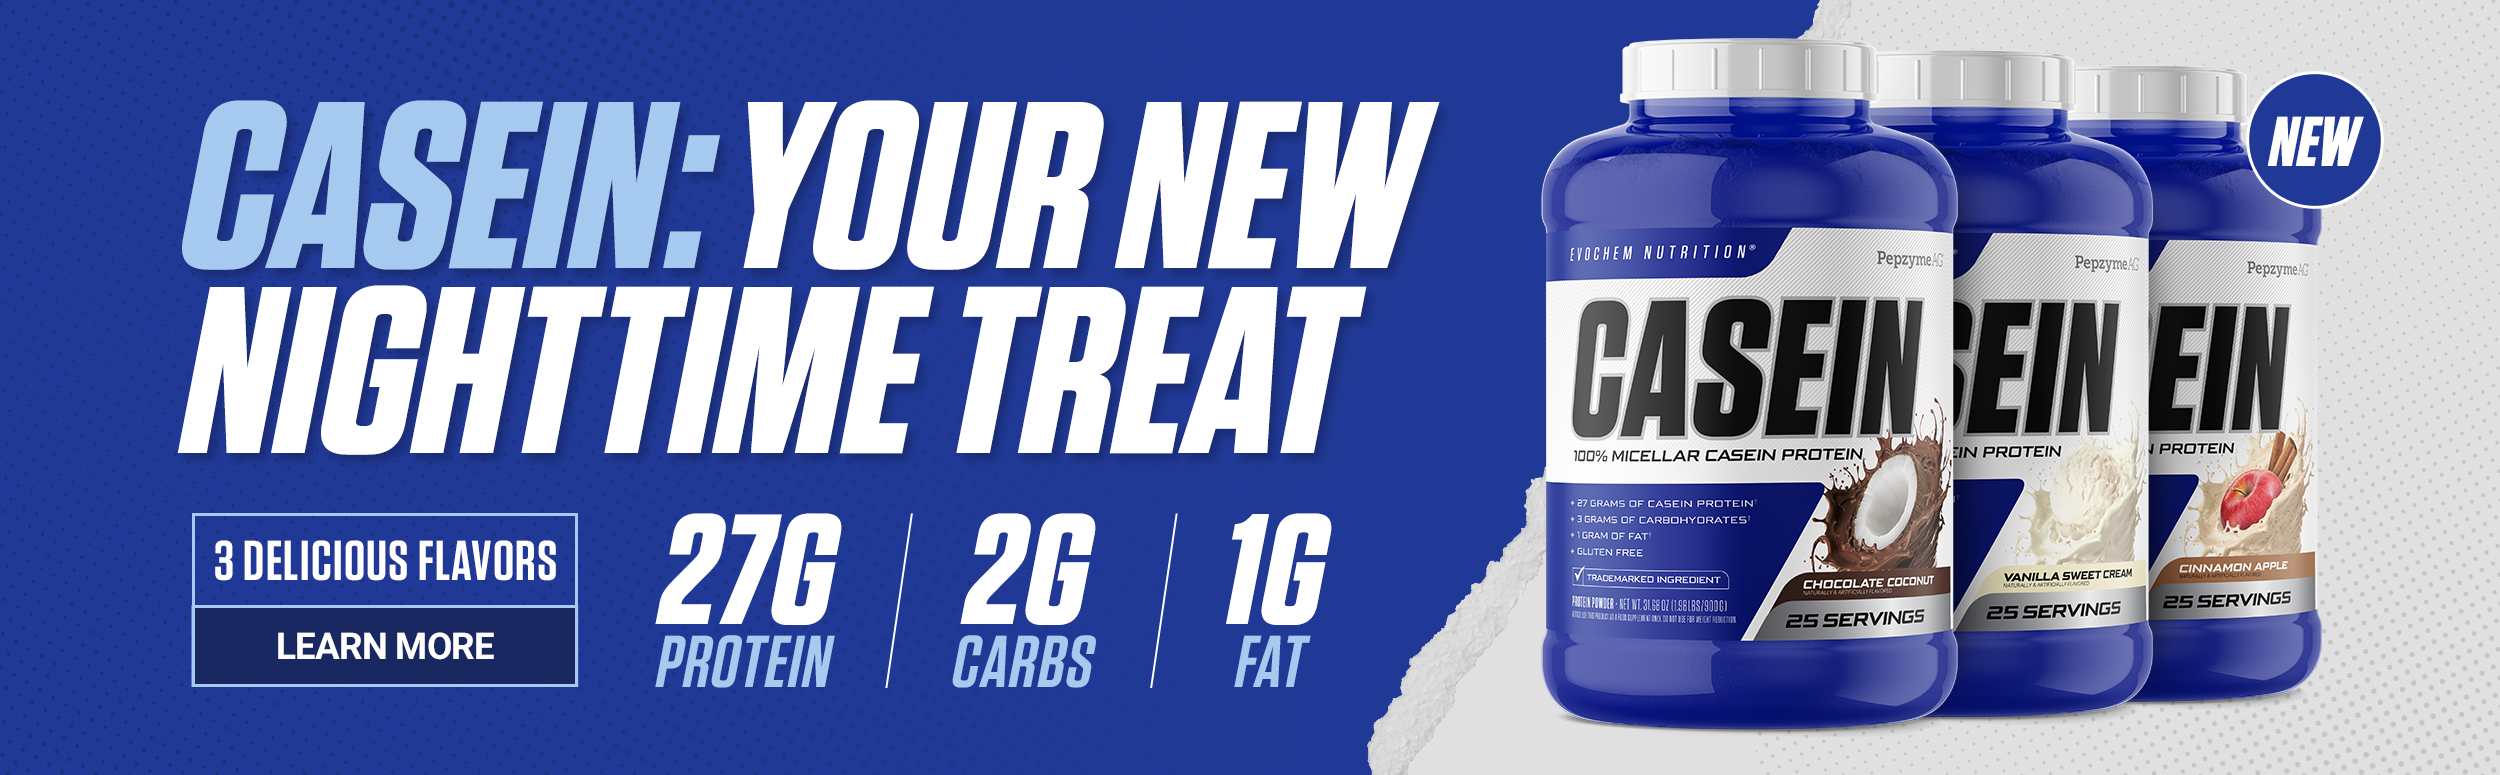 EVOchem Casein - Your New Nighttime Treat - 3 Delicious Flavors - Learn More